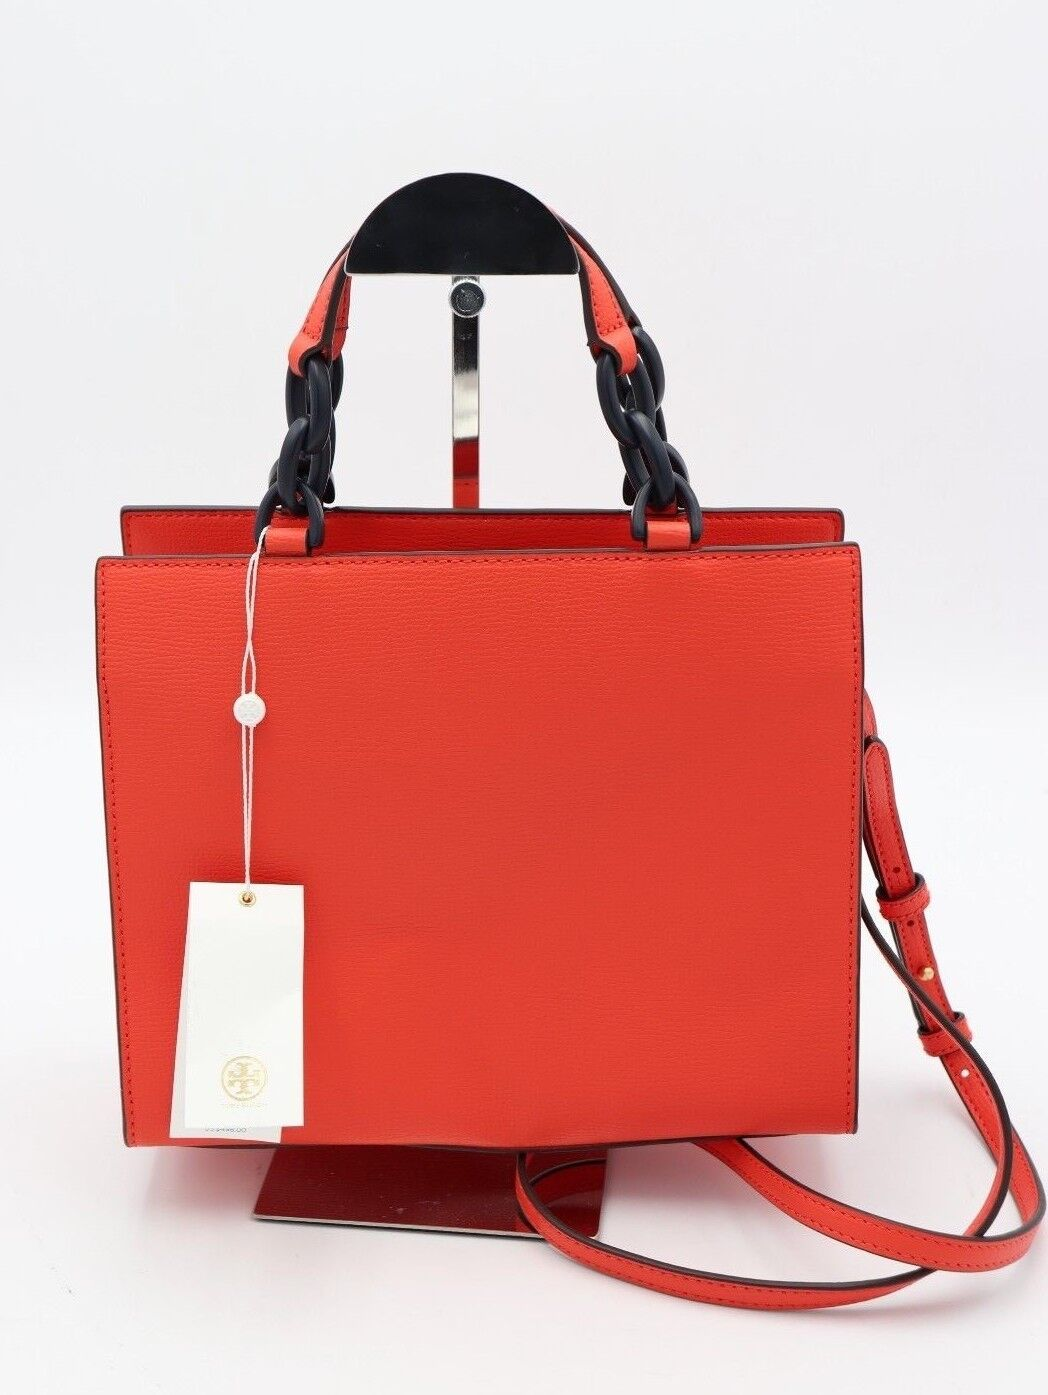 72349169c706 Tory Burch Kira Red Leather Small Tote Crossbody Shoulder Bag 45157 ...